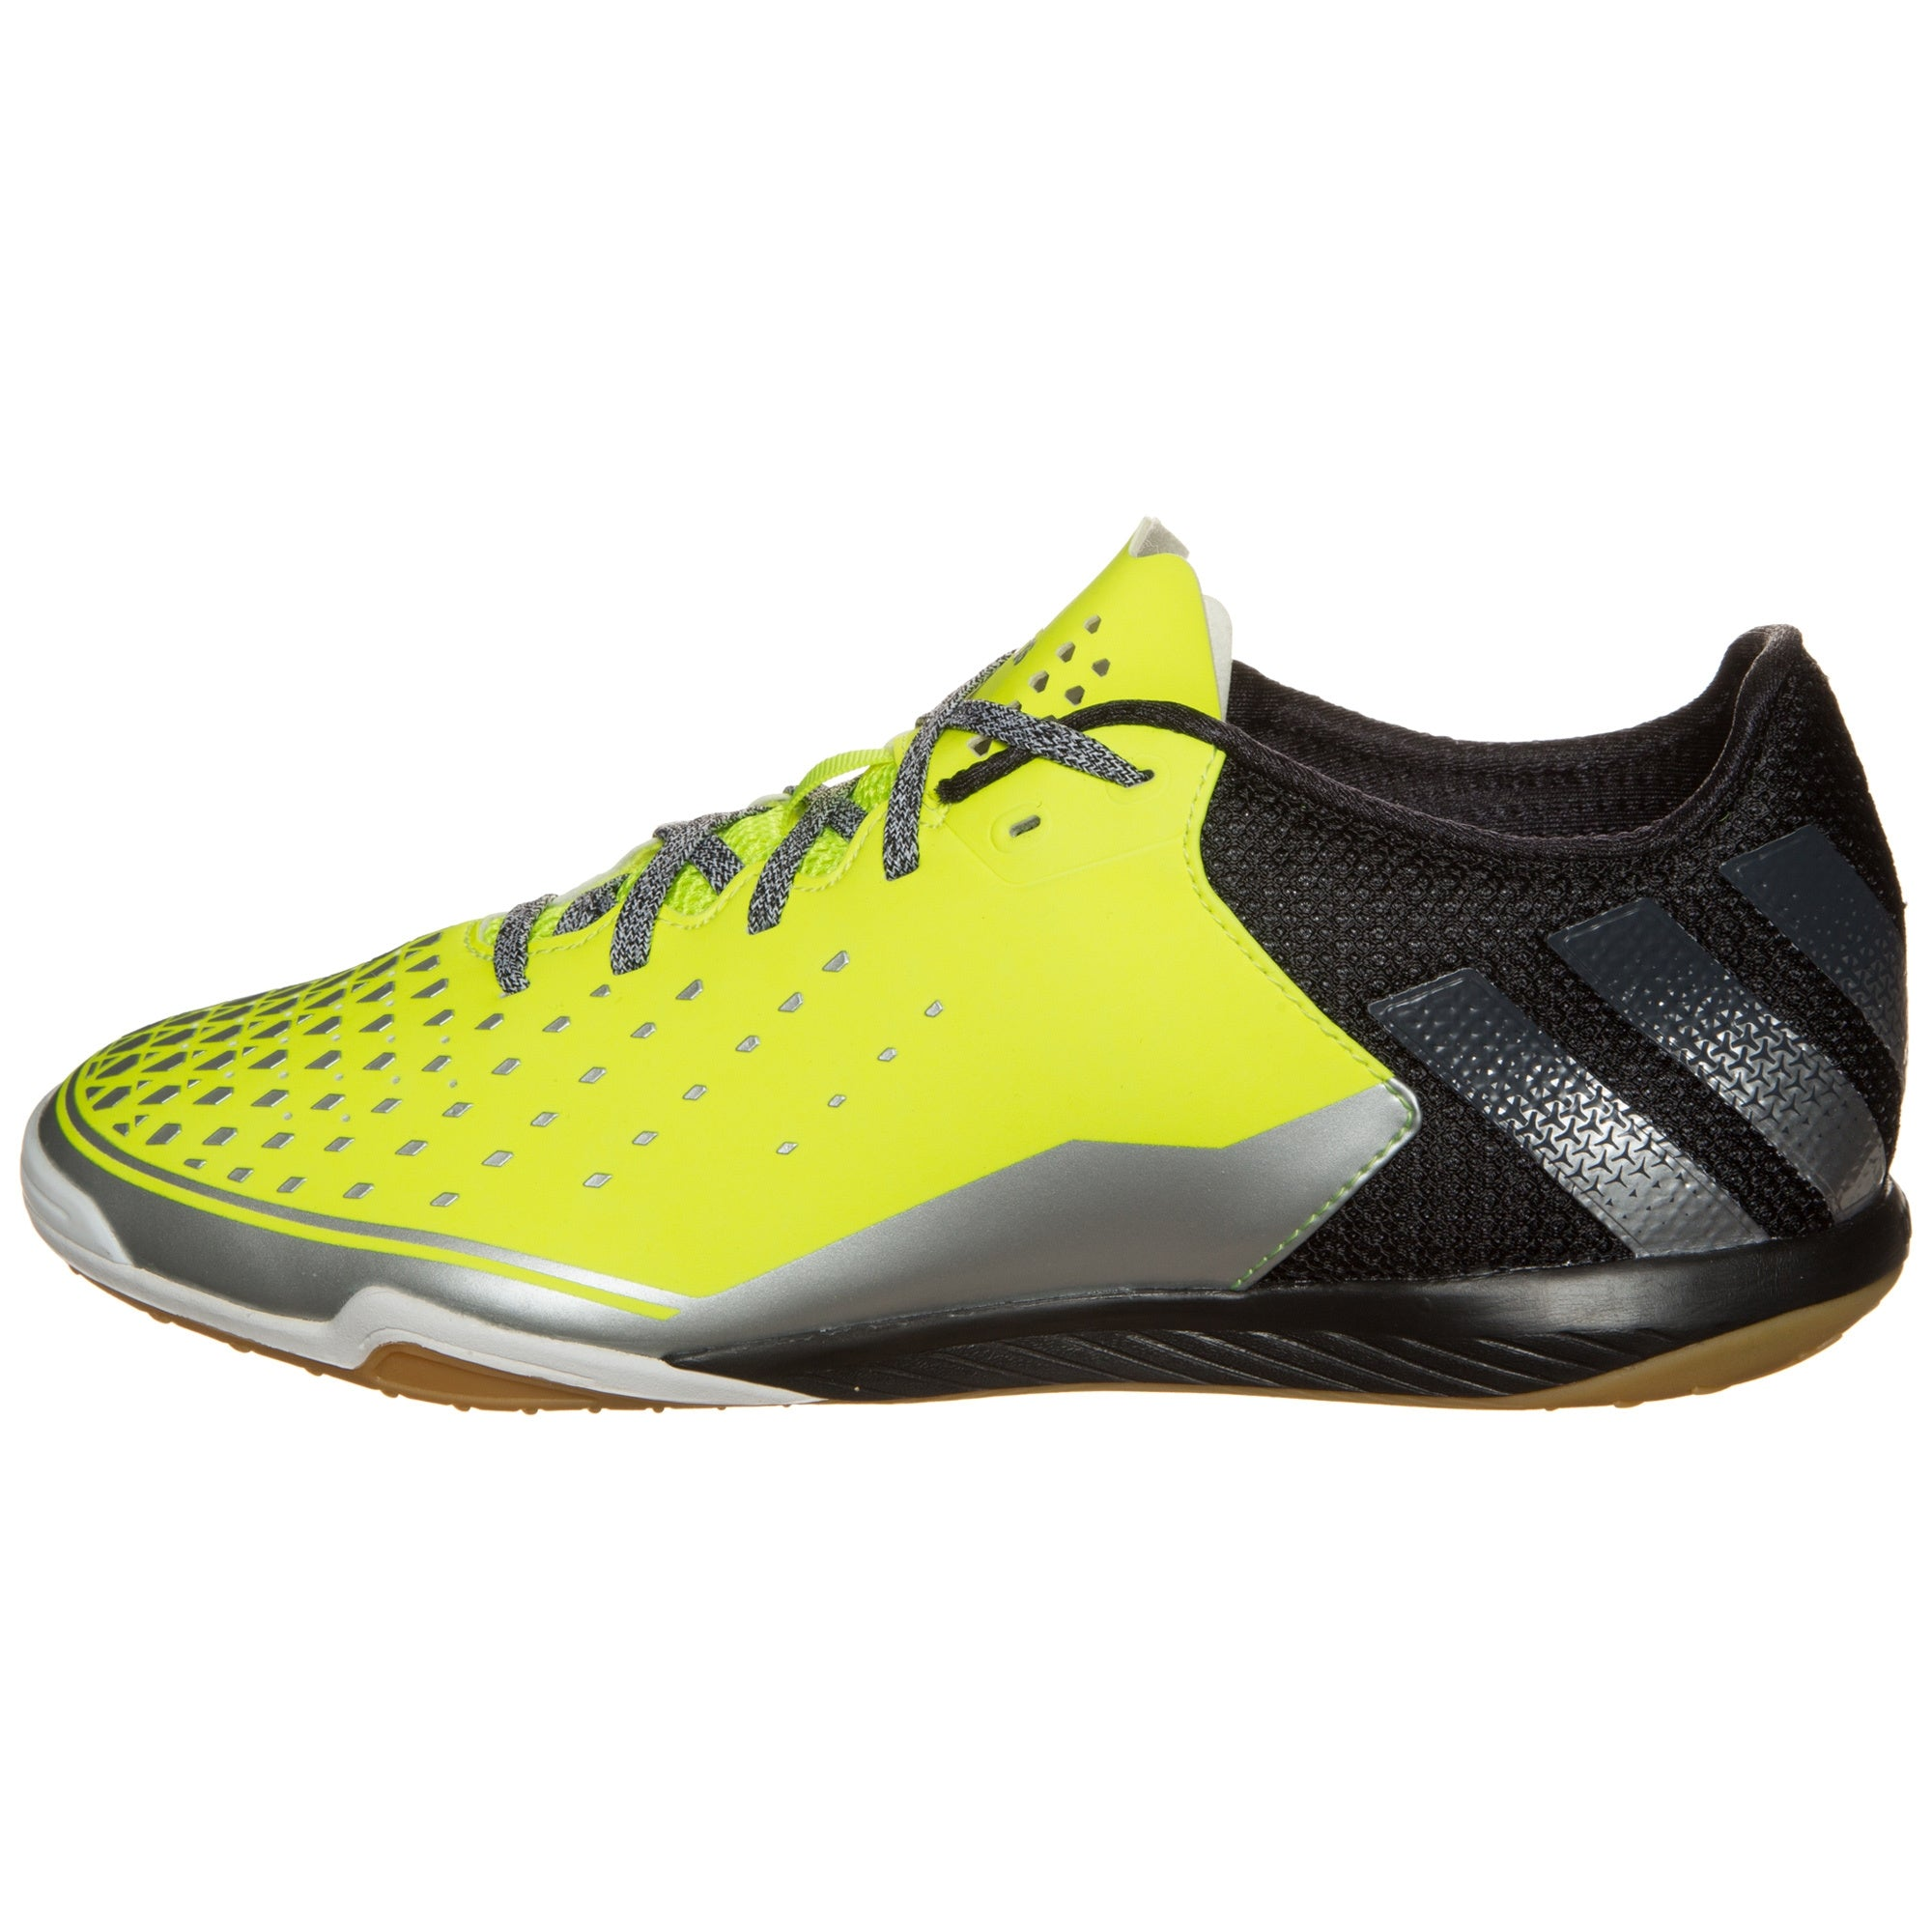 a8ac06b906a adidas Ace 16.2 Court Indoor Football Shoes Mens Yellow Futsal ...